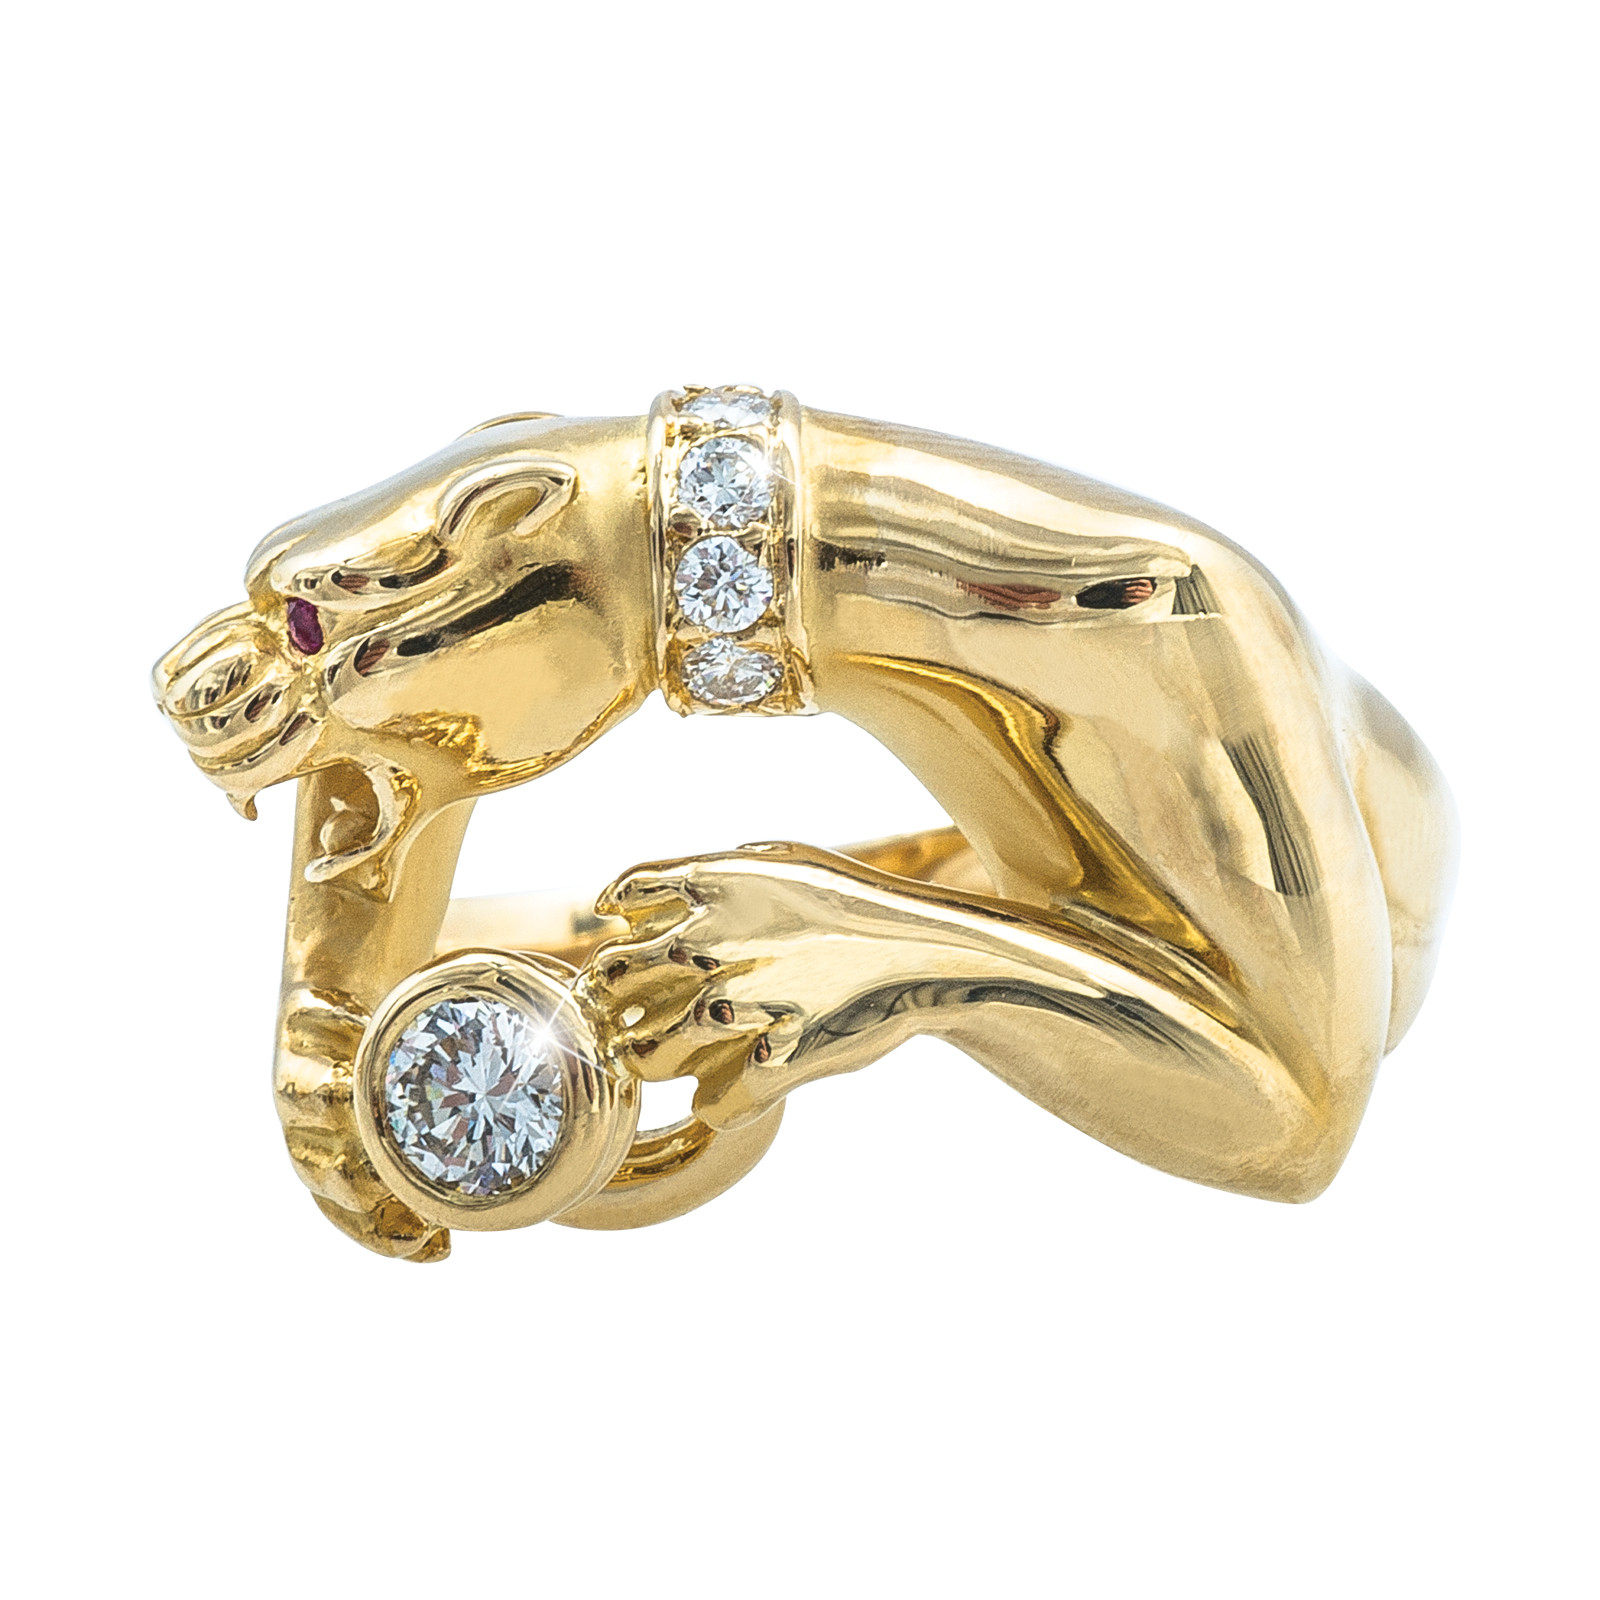 Vintage 0.35 CT Diamond Carrera Y Carrera Ruby Eyes Panther Ring